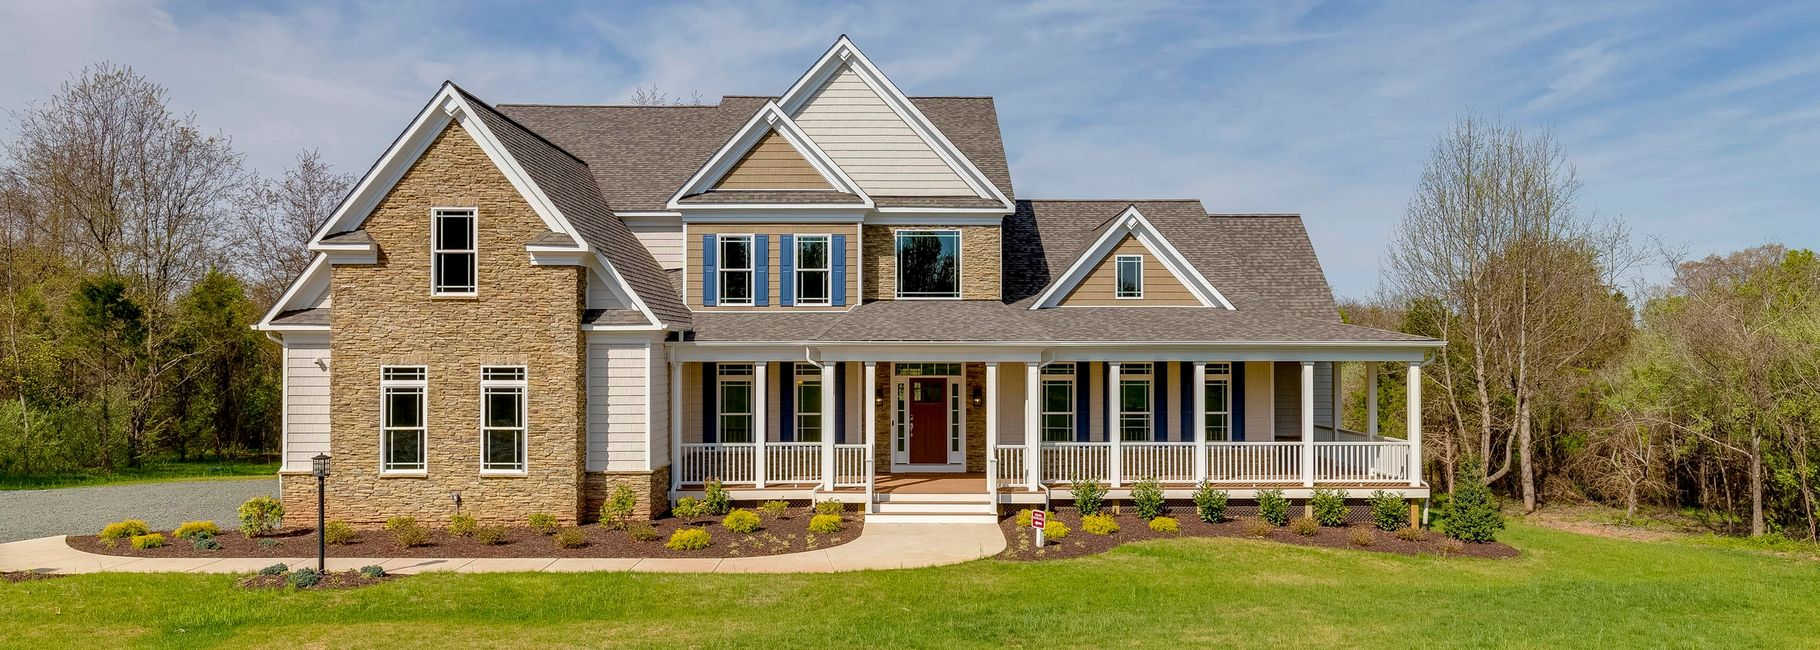 custom homes, home builder, new construction homes, pighini builders